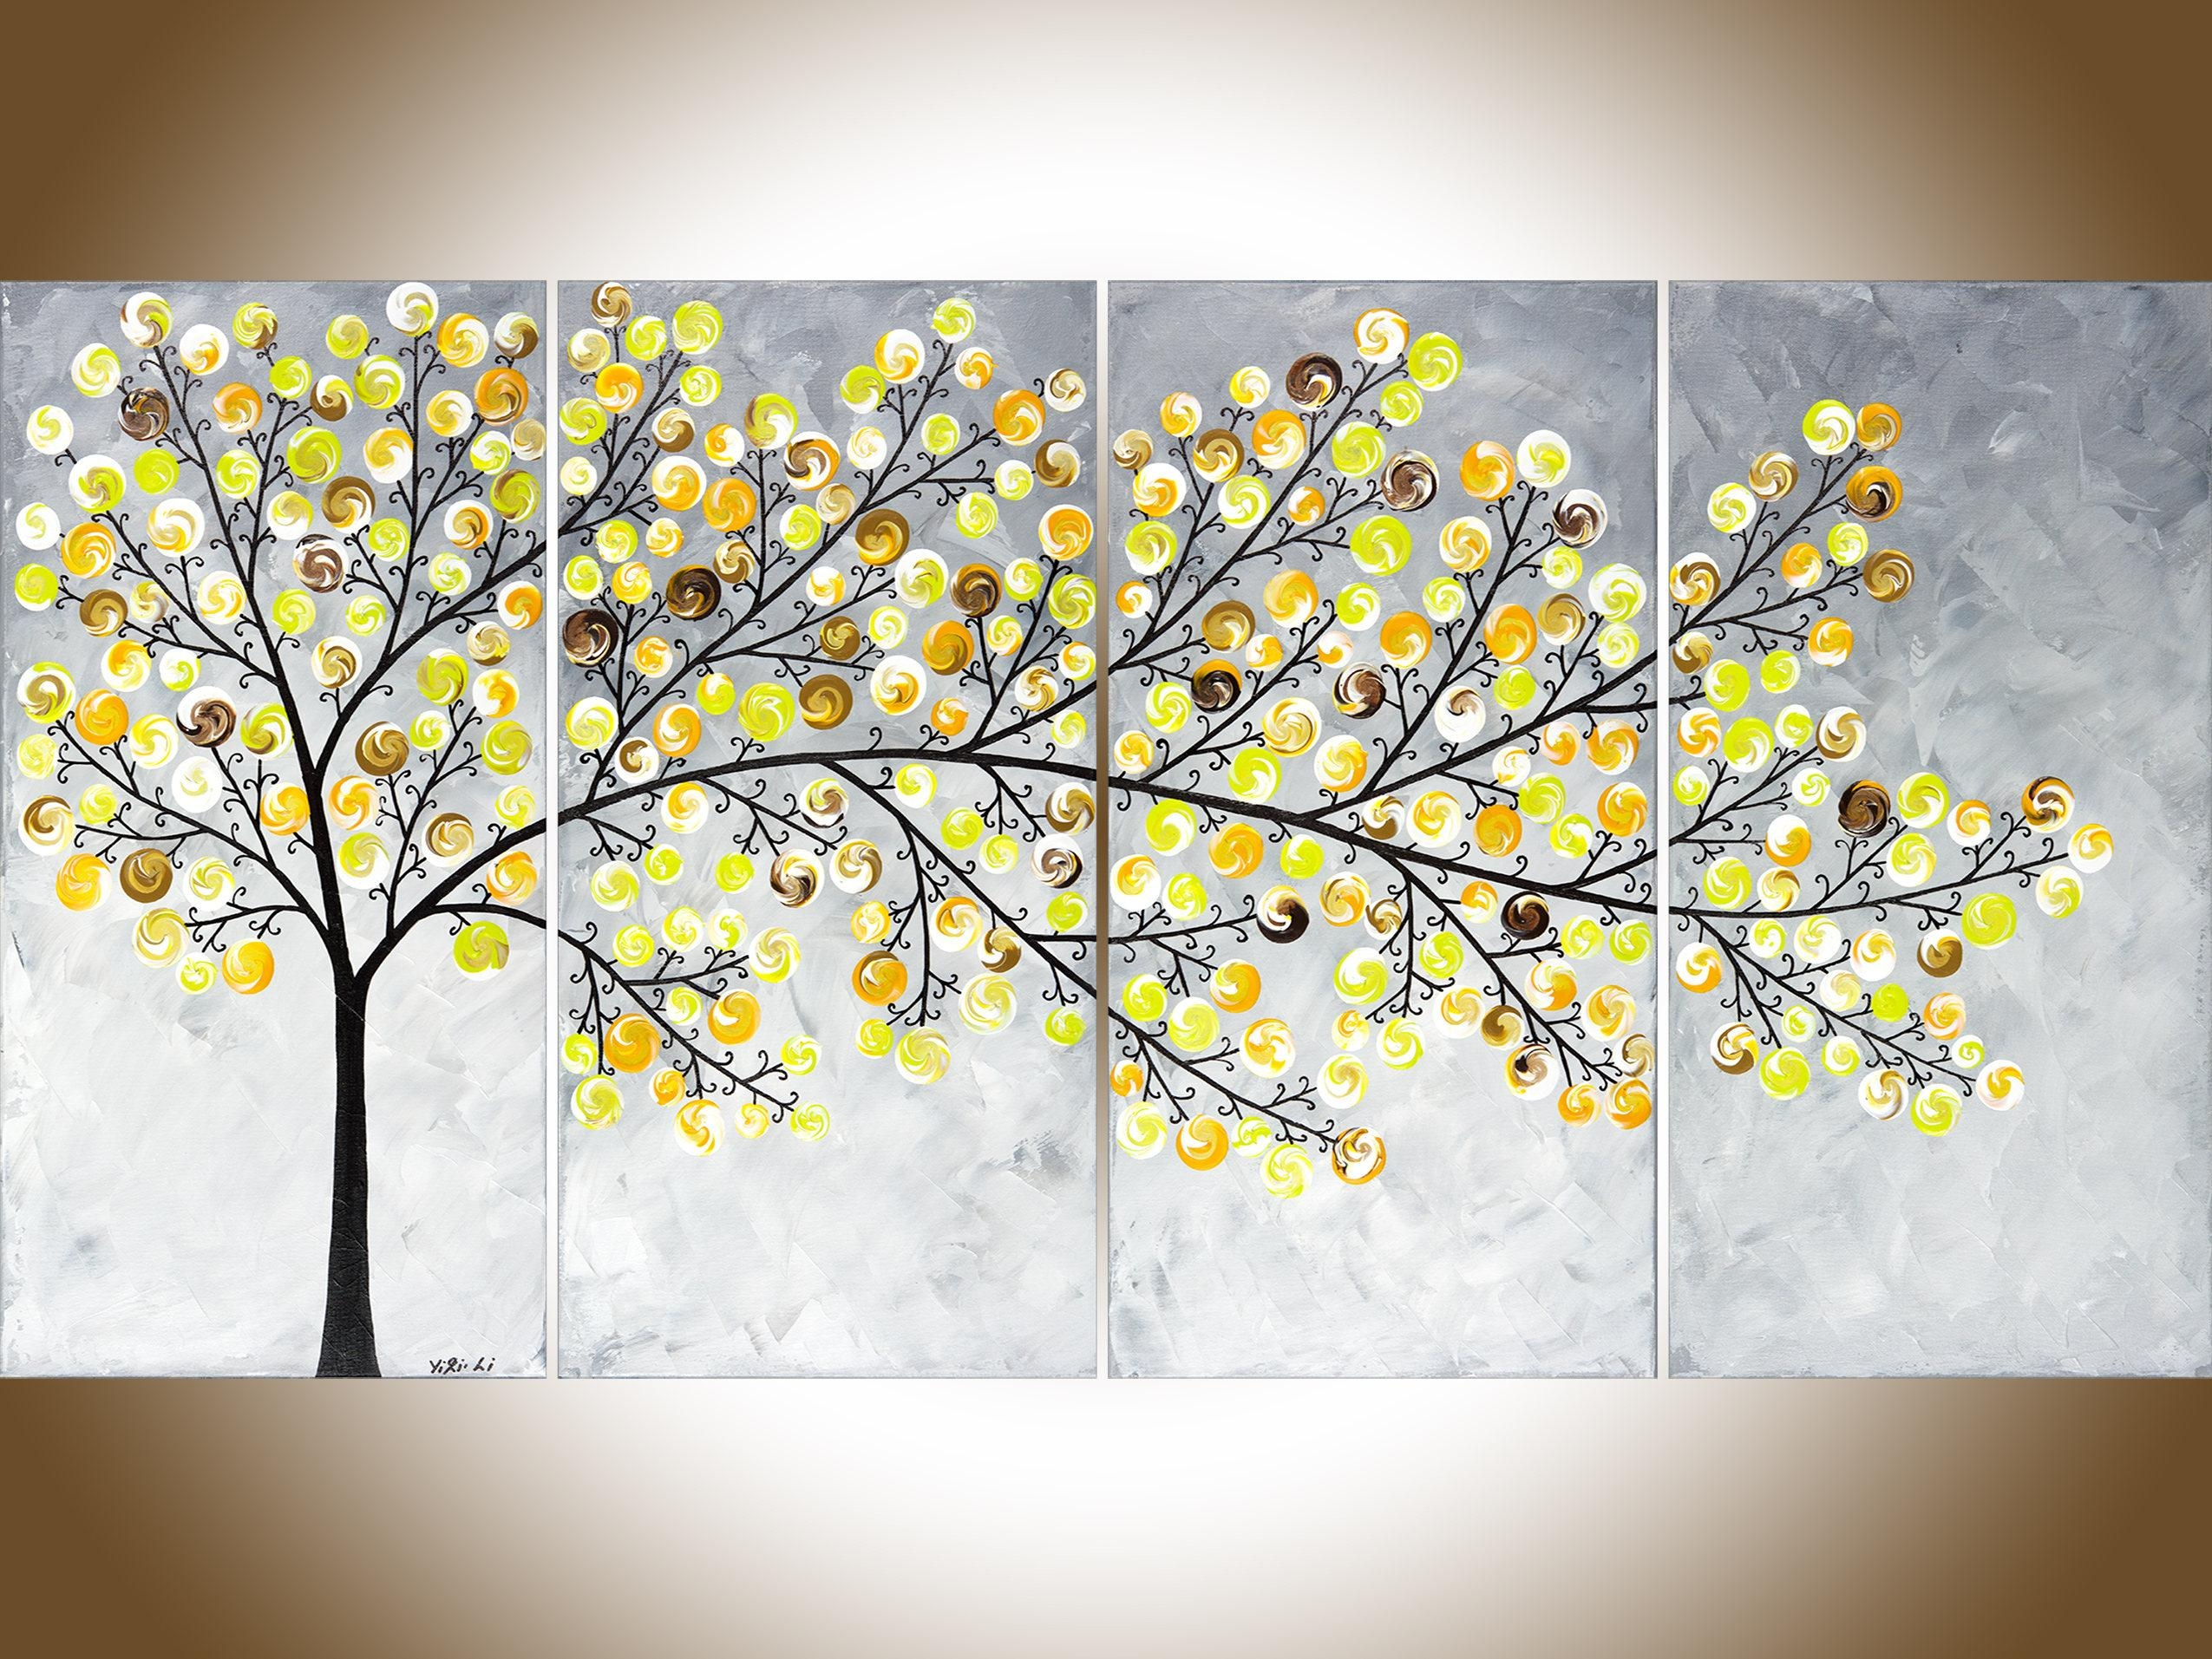 Wall Art Ideas: Yellow and Grey Wall Art (Explore #8 of 20 Photos)